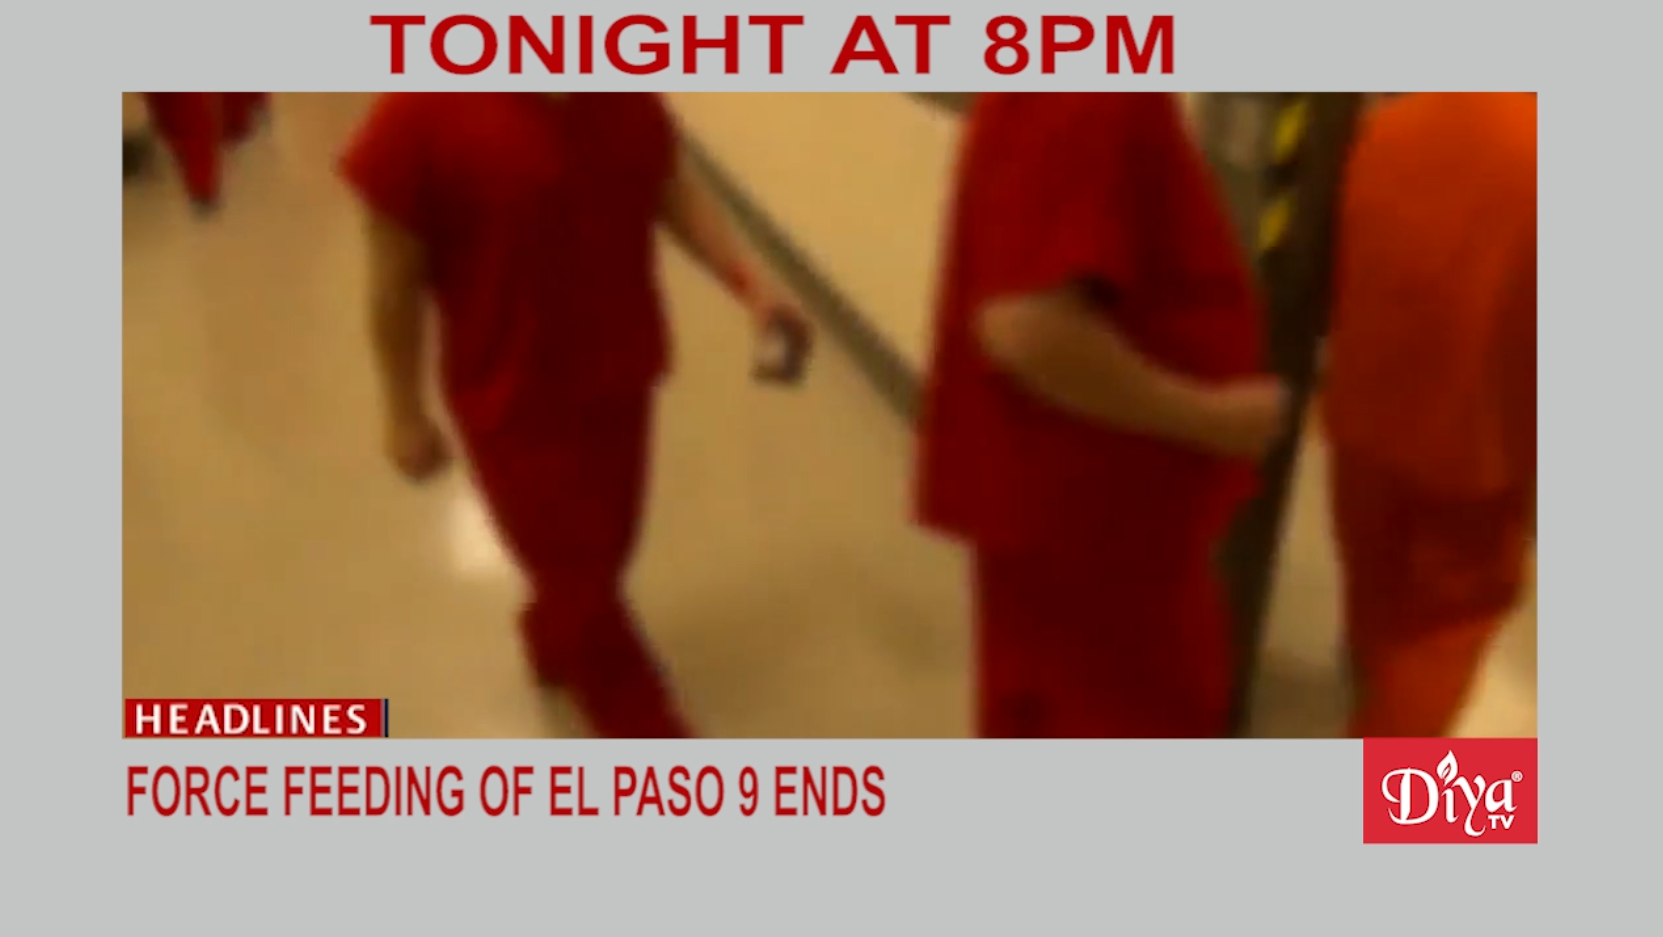 Force Feeding of prisoners in El Paso ended today